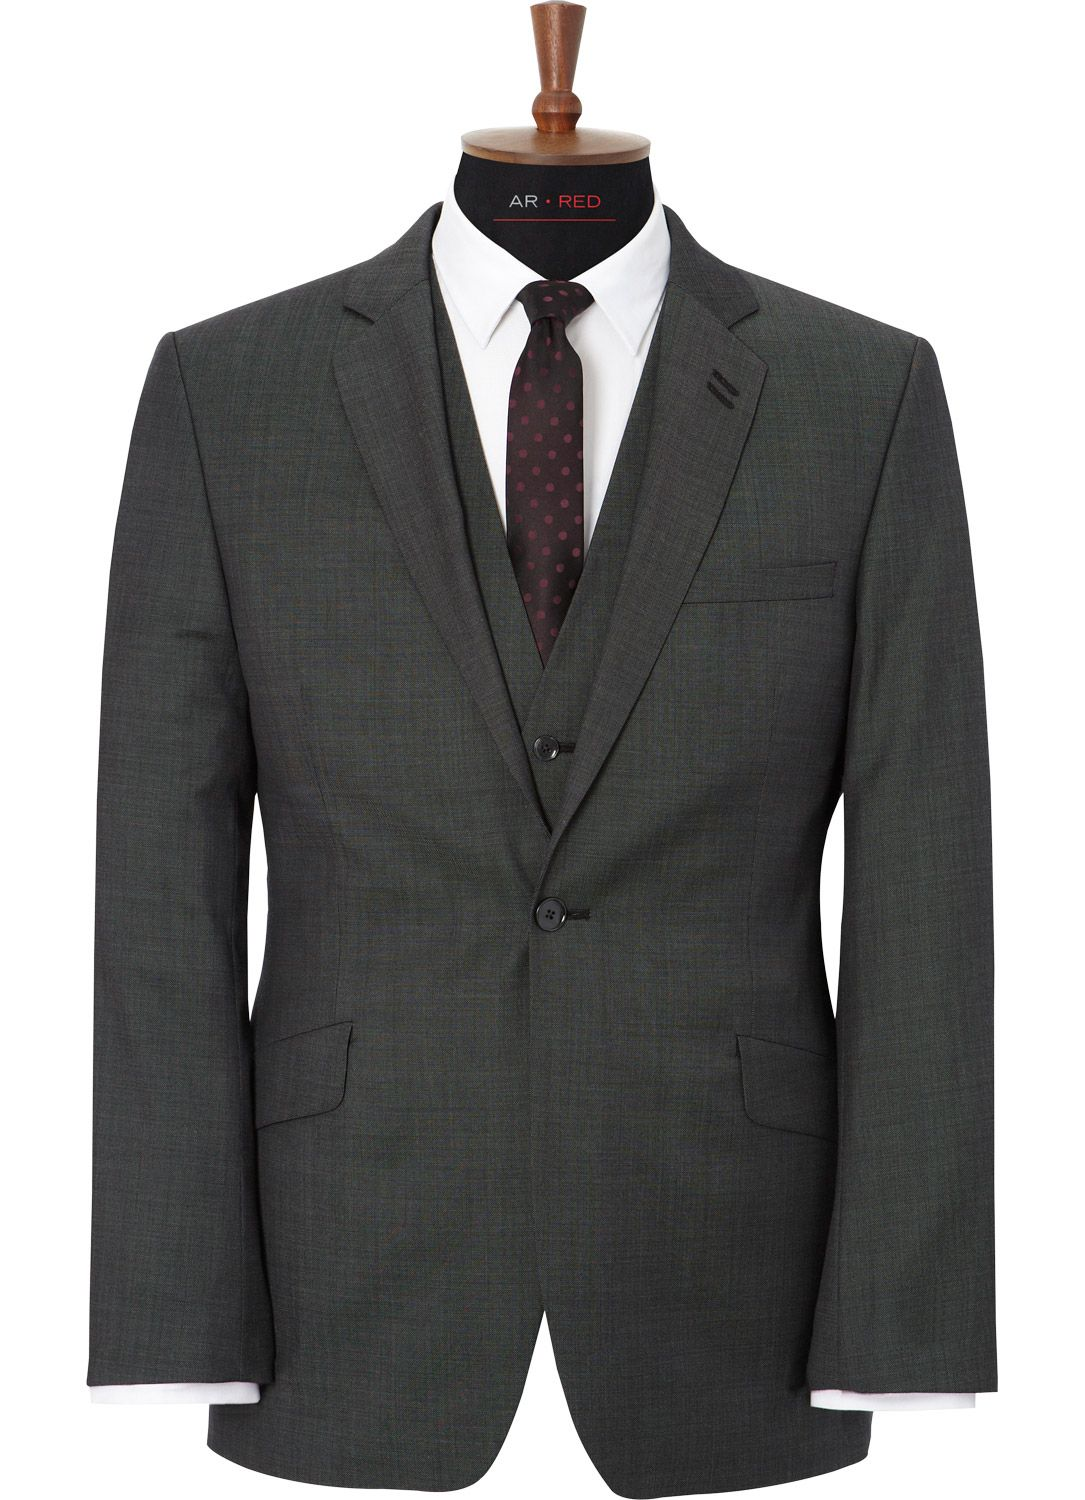 Men S And Women S Suits Tailoring Clothing Suits Mens Outfits Suit Fashion